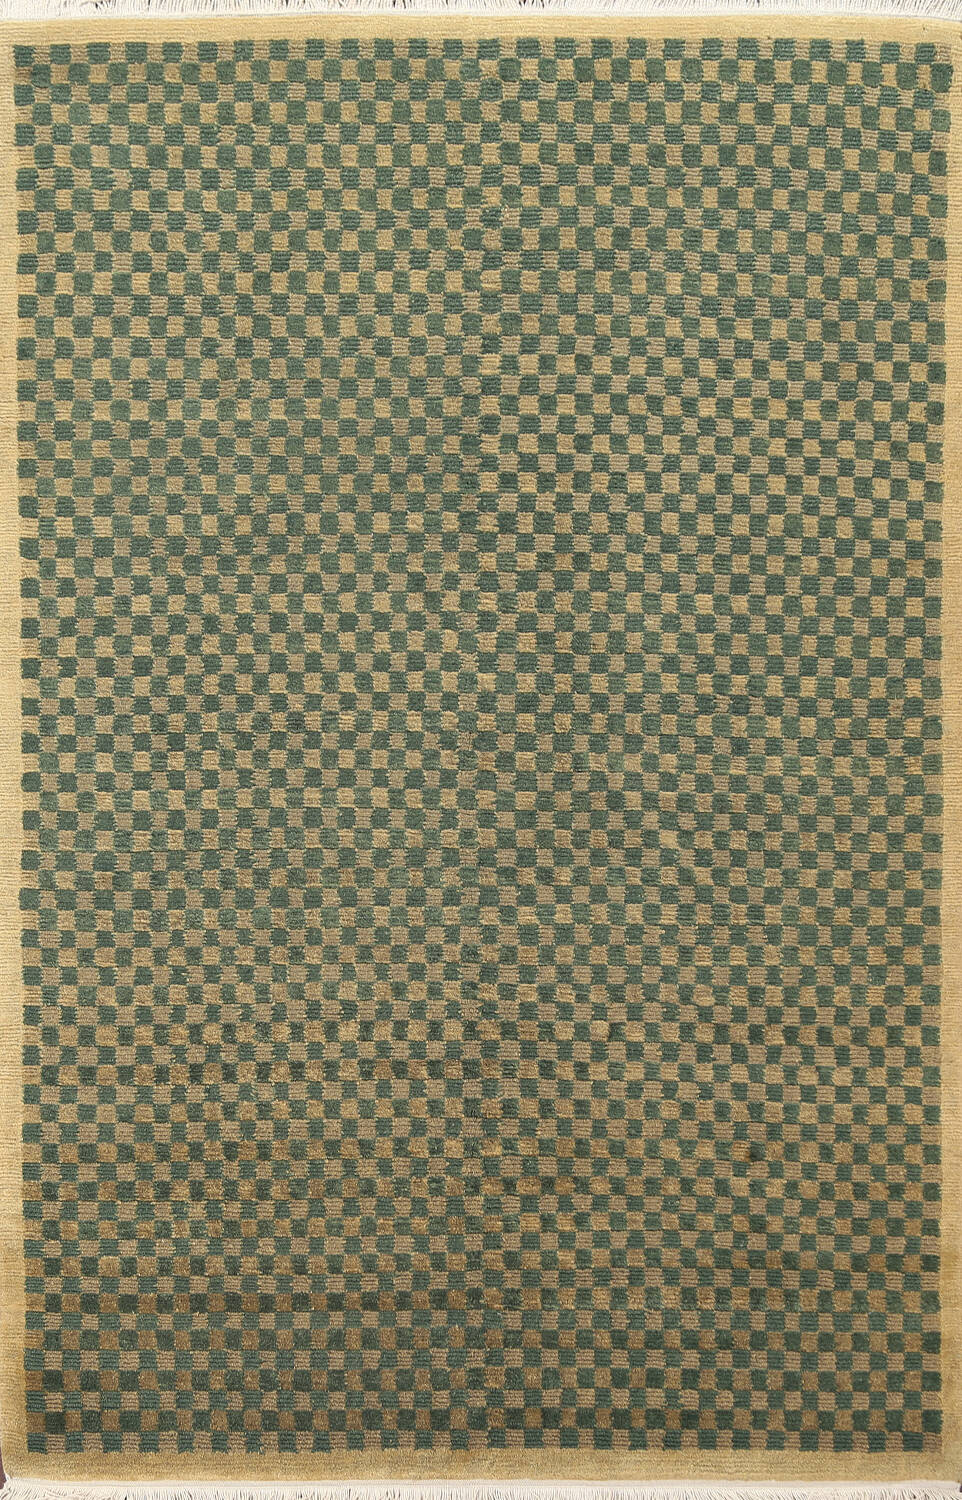 Green/ Gold Checkered Nepalese Wool Area Rug 6x9 image 1